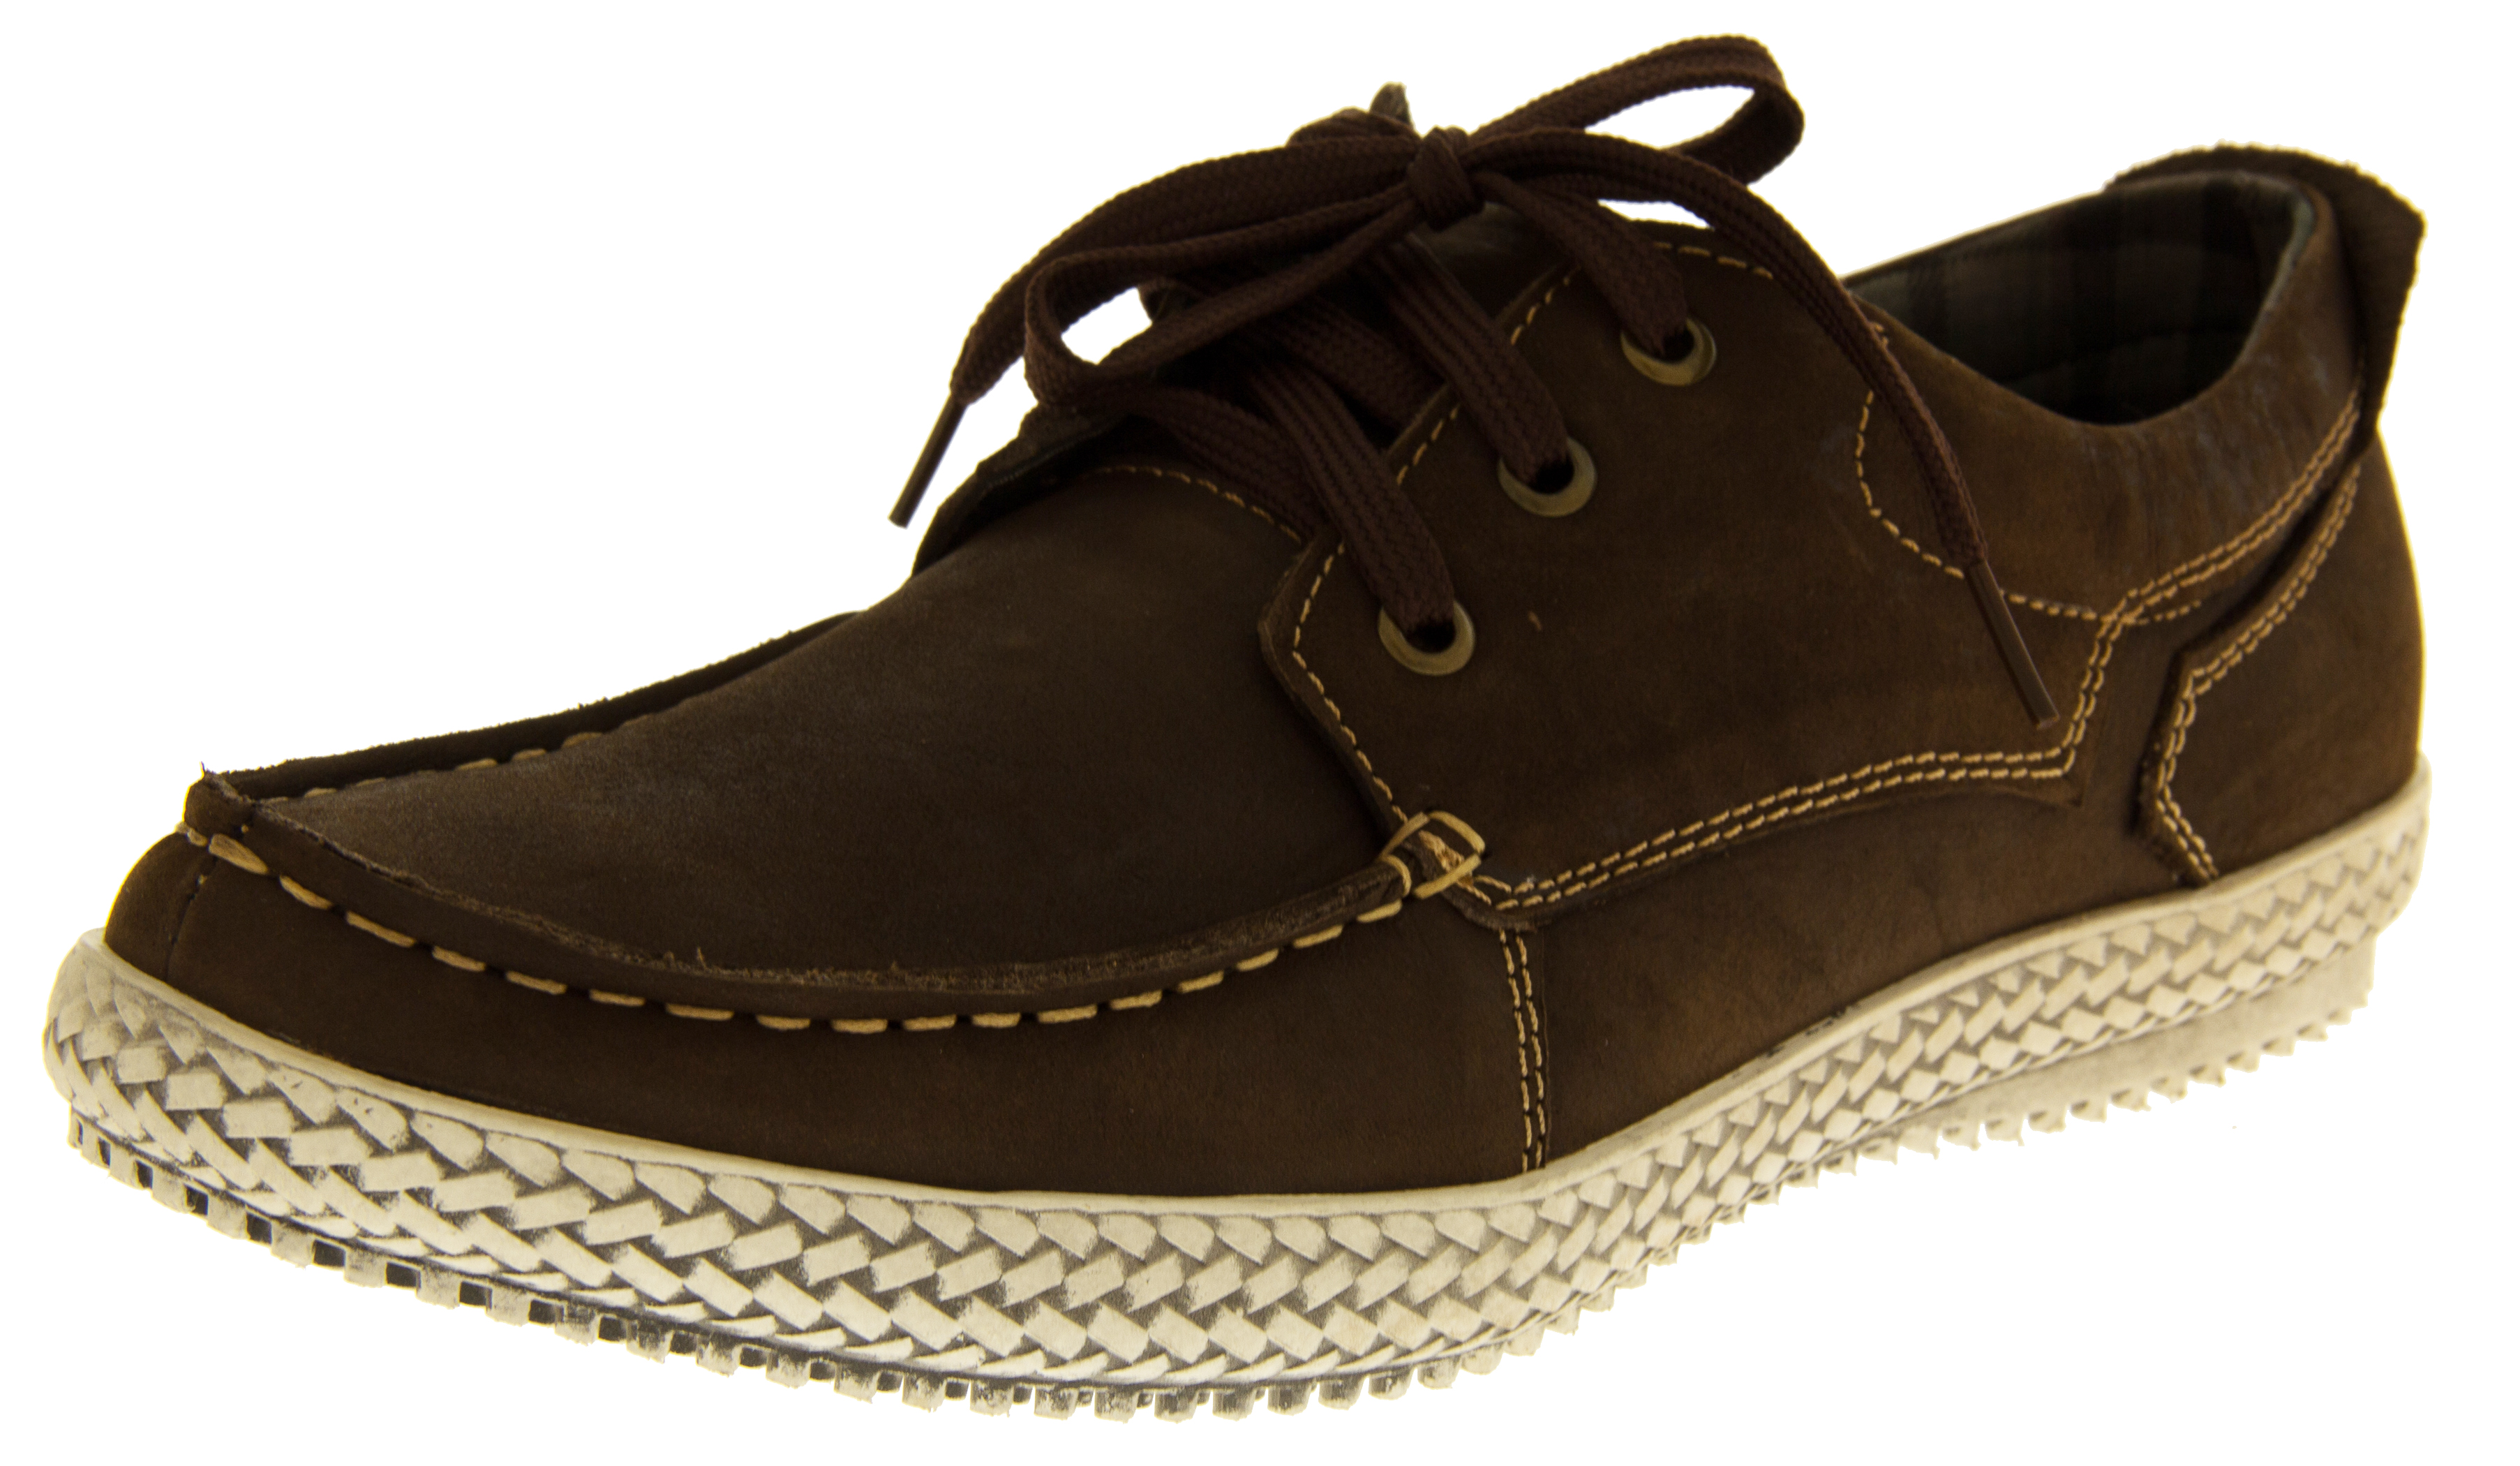 c5d00a2262f Mens REAL LEATHER YACHTSMAN Casual Shoes